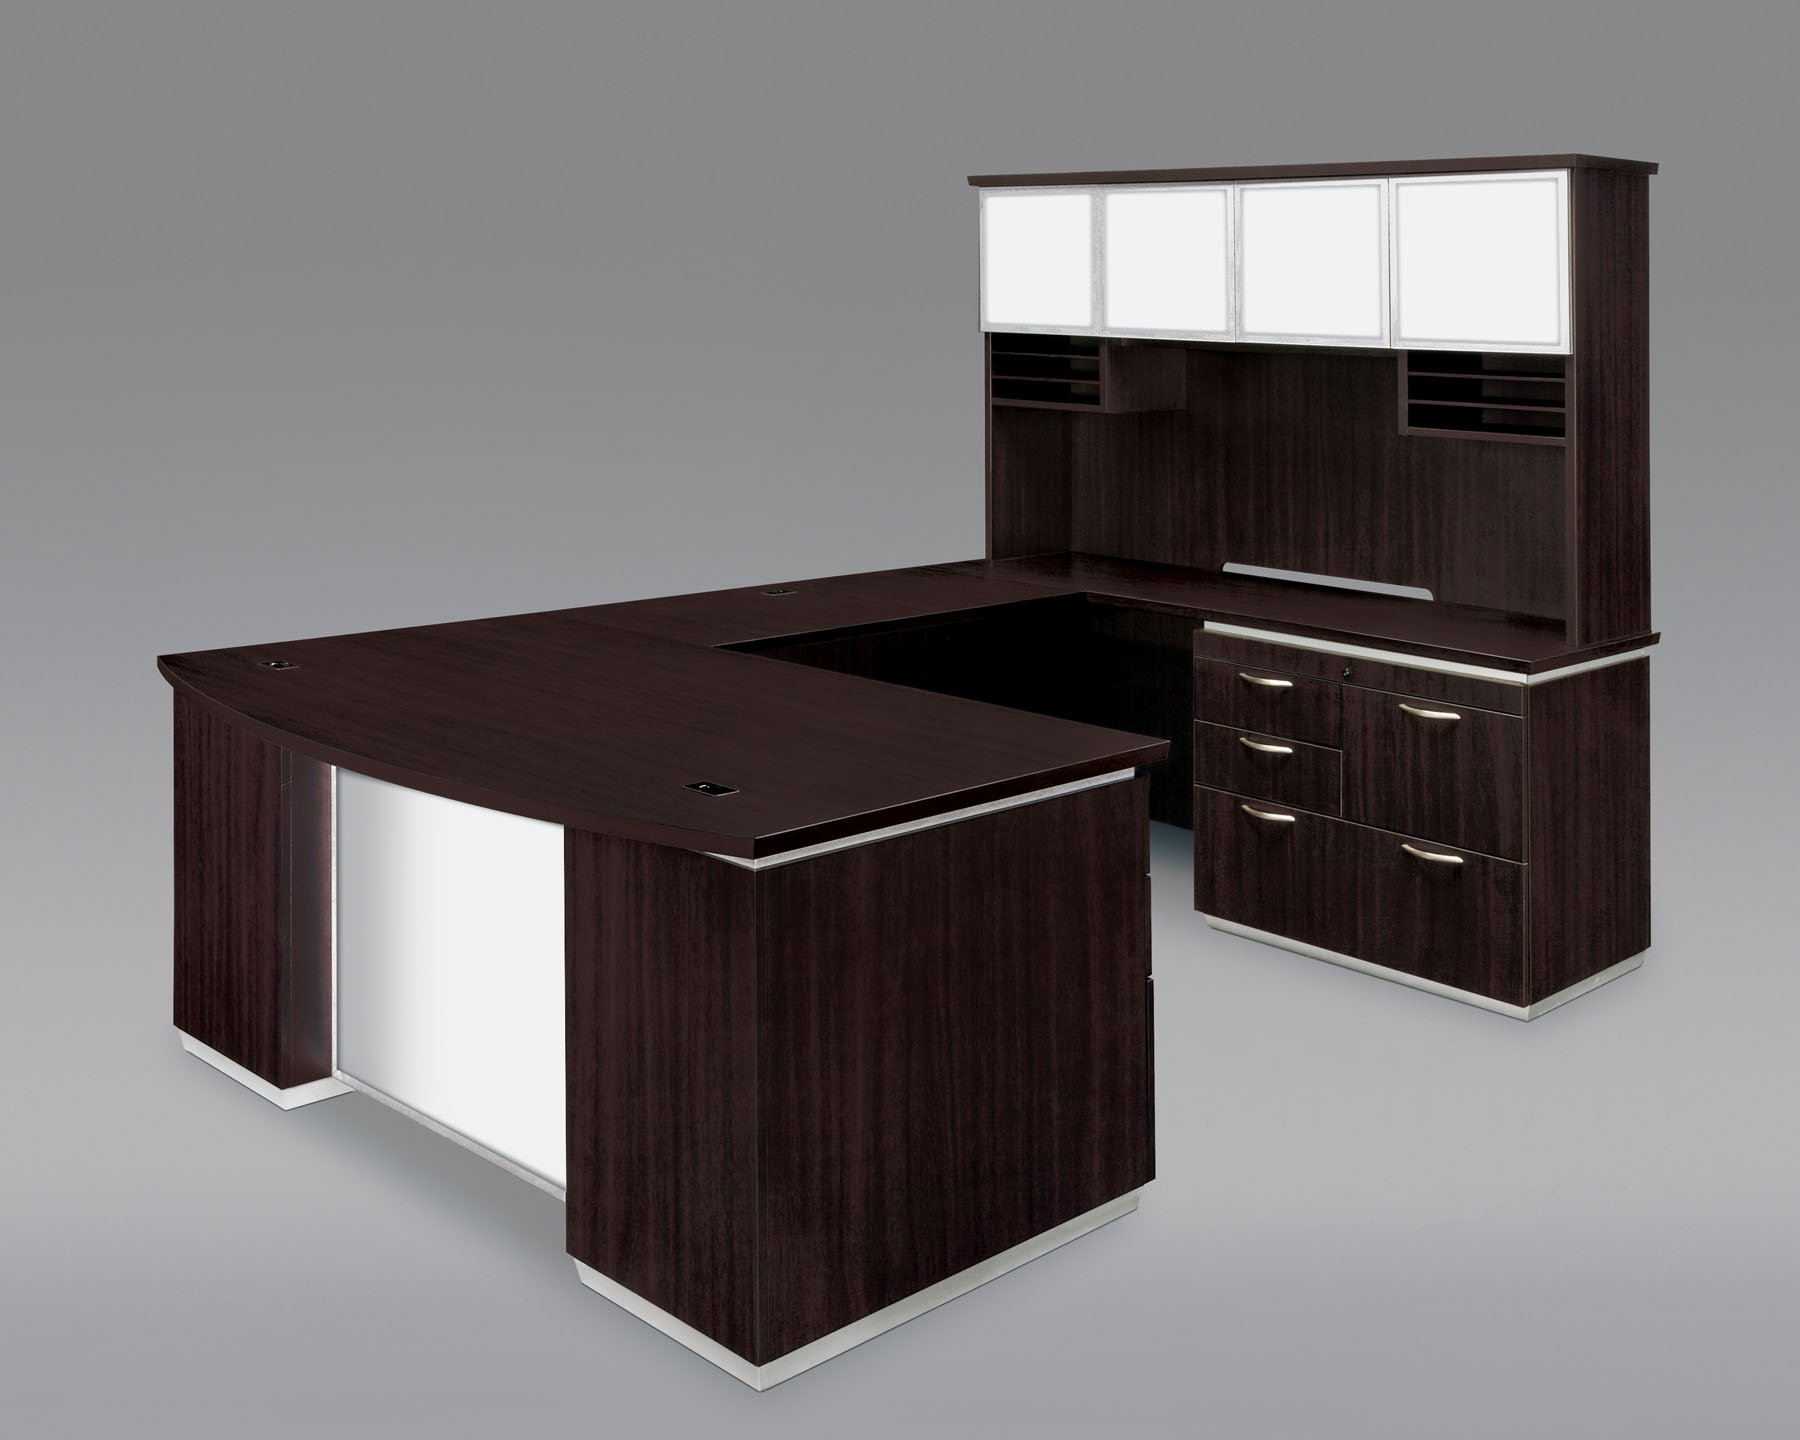 Flexsteel Pimlico  Right Personal File Bow Front U Desk with White Glass Modesty Panel